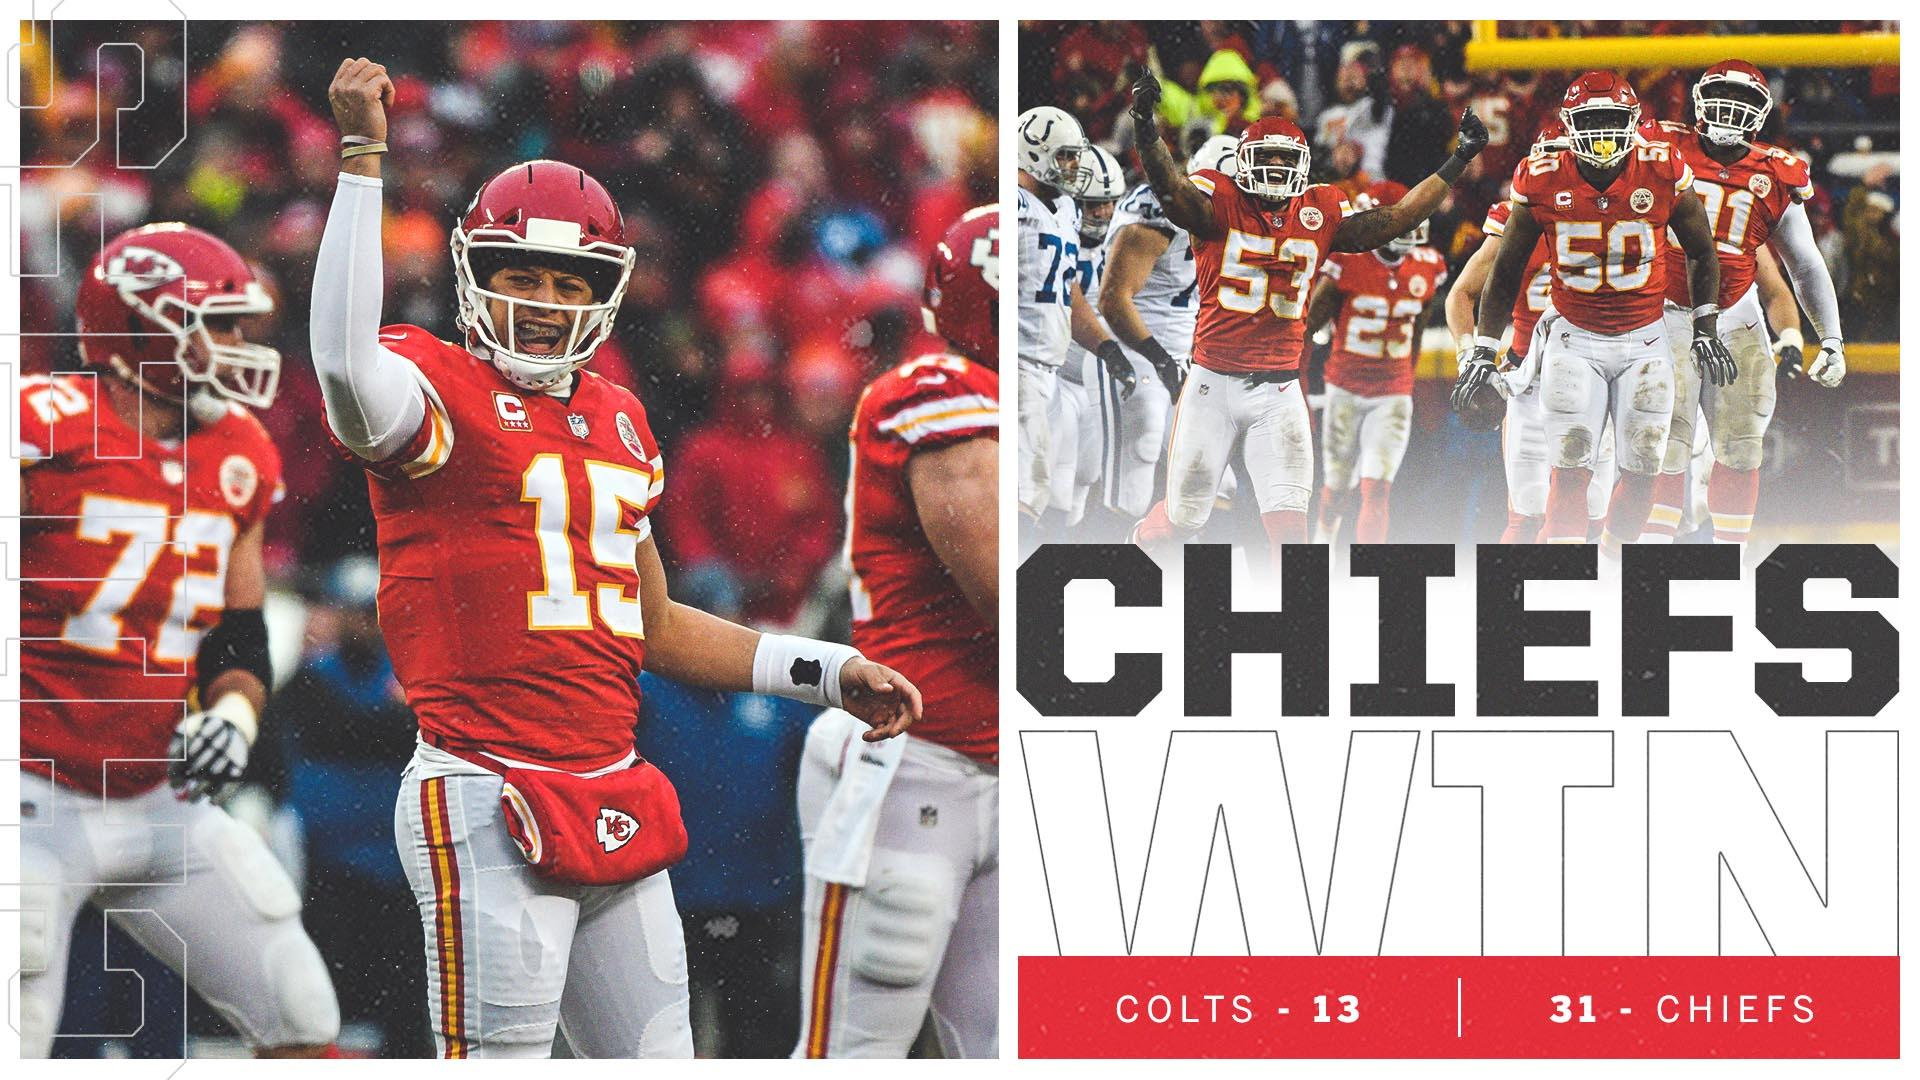 Chiefs are playing for the AFC title ��  Kansas City wins its first home playoff game since 1993. https://t.co/nYEgh1hEdN